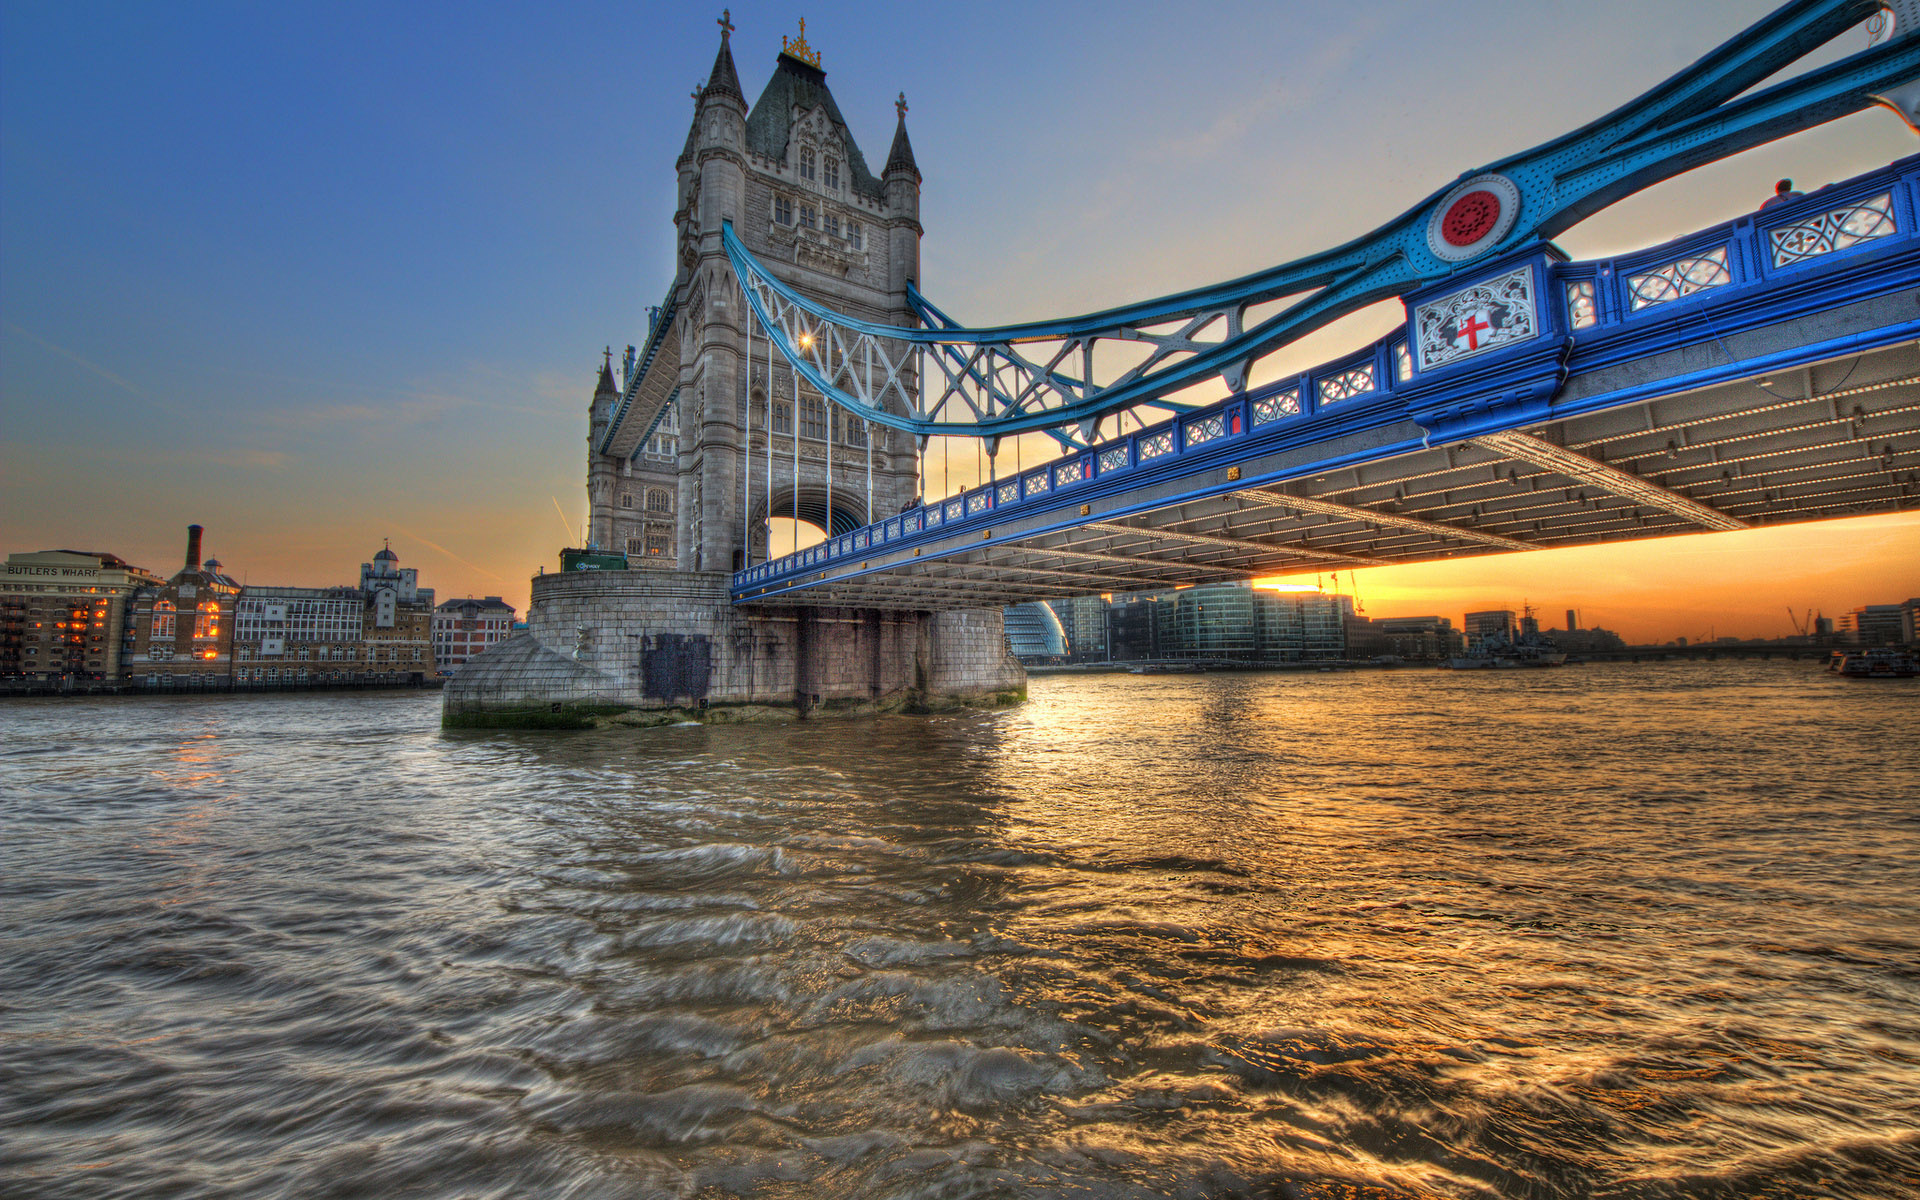 Thames River London, Wallpaper bridge, london, thames, river, tower bridge, england ...